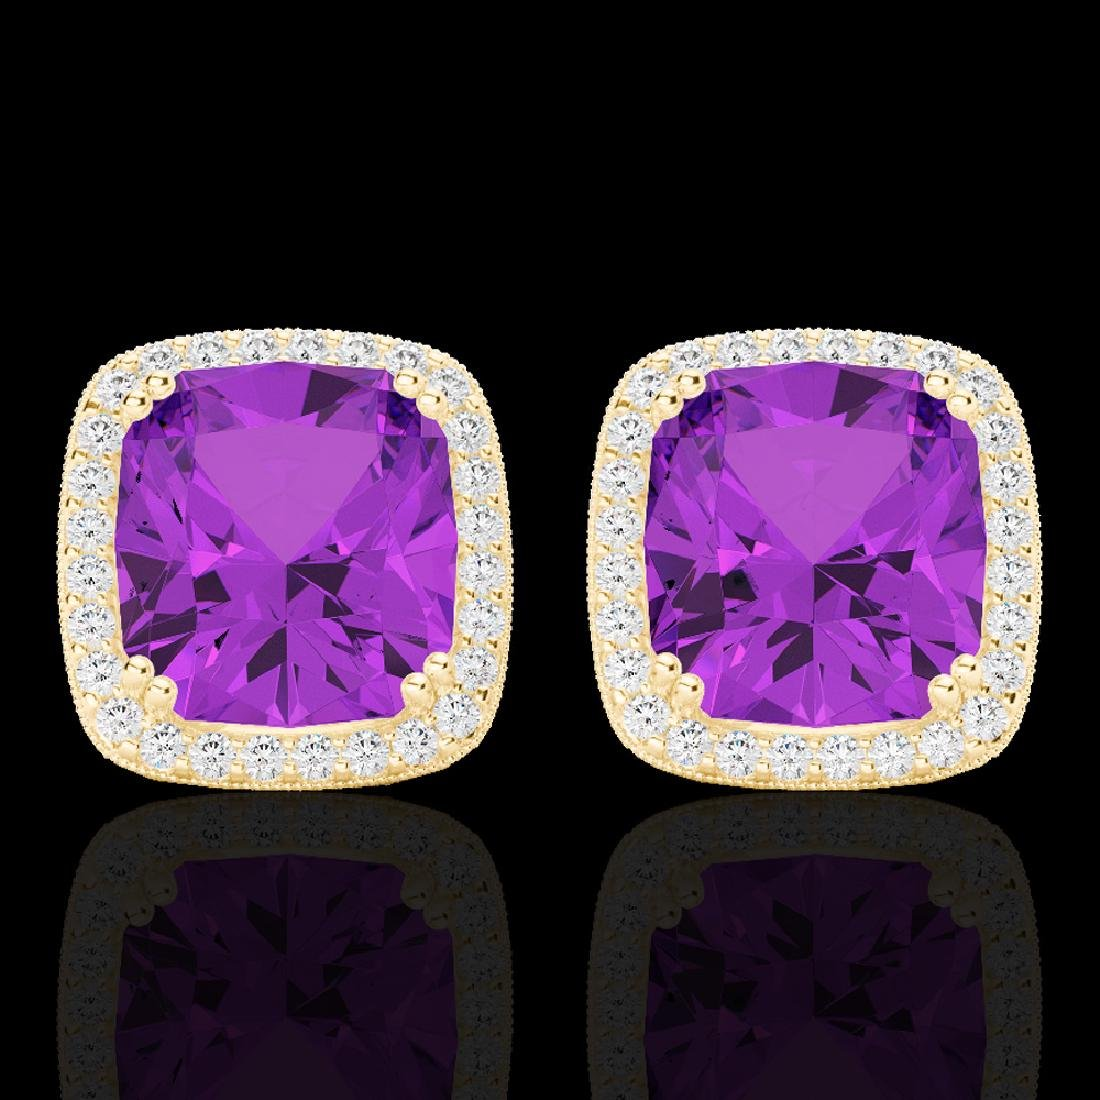 6 CTW Amethyst & Micro Pave VS/SI Diamond Halo